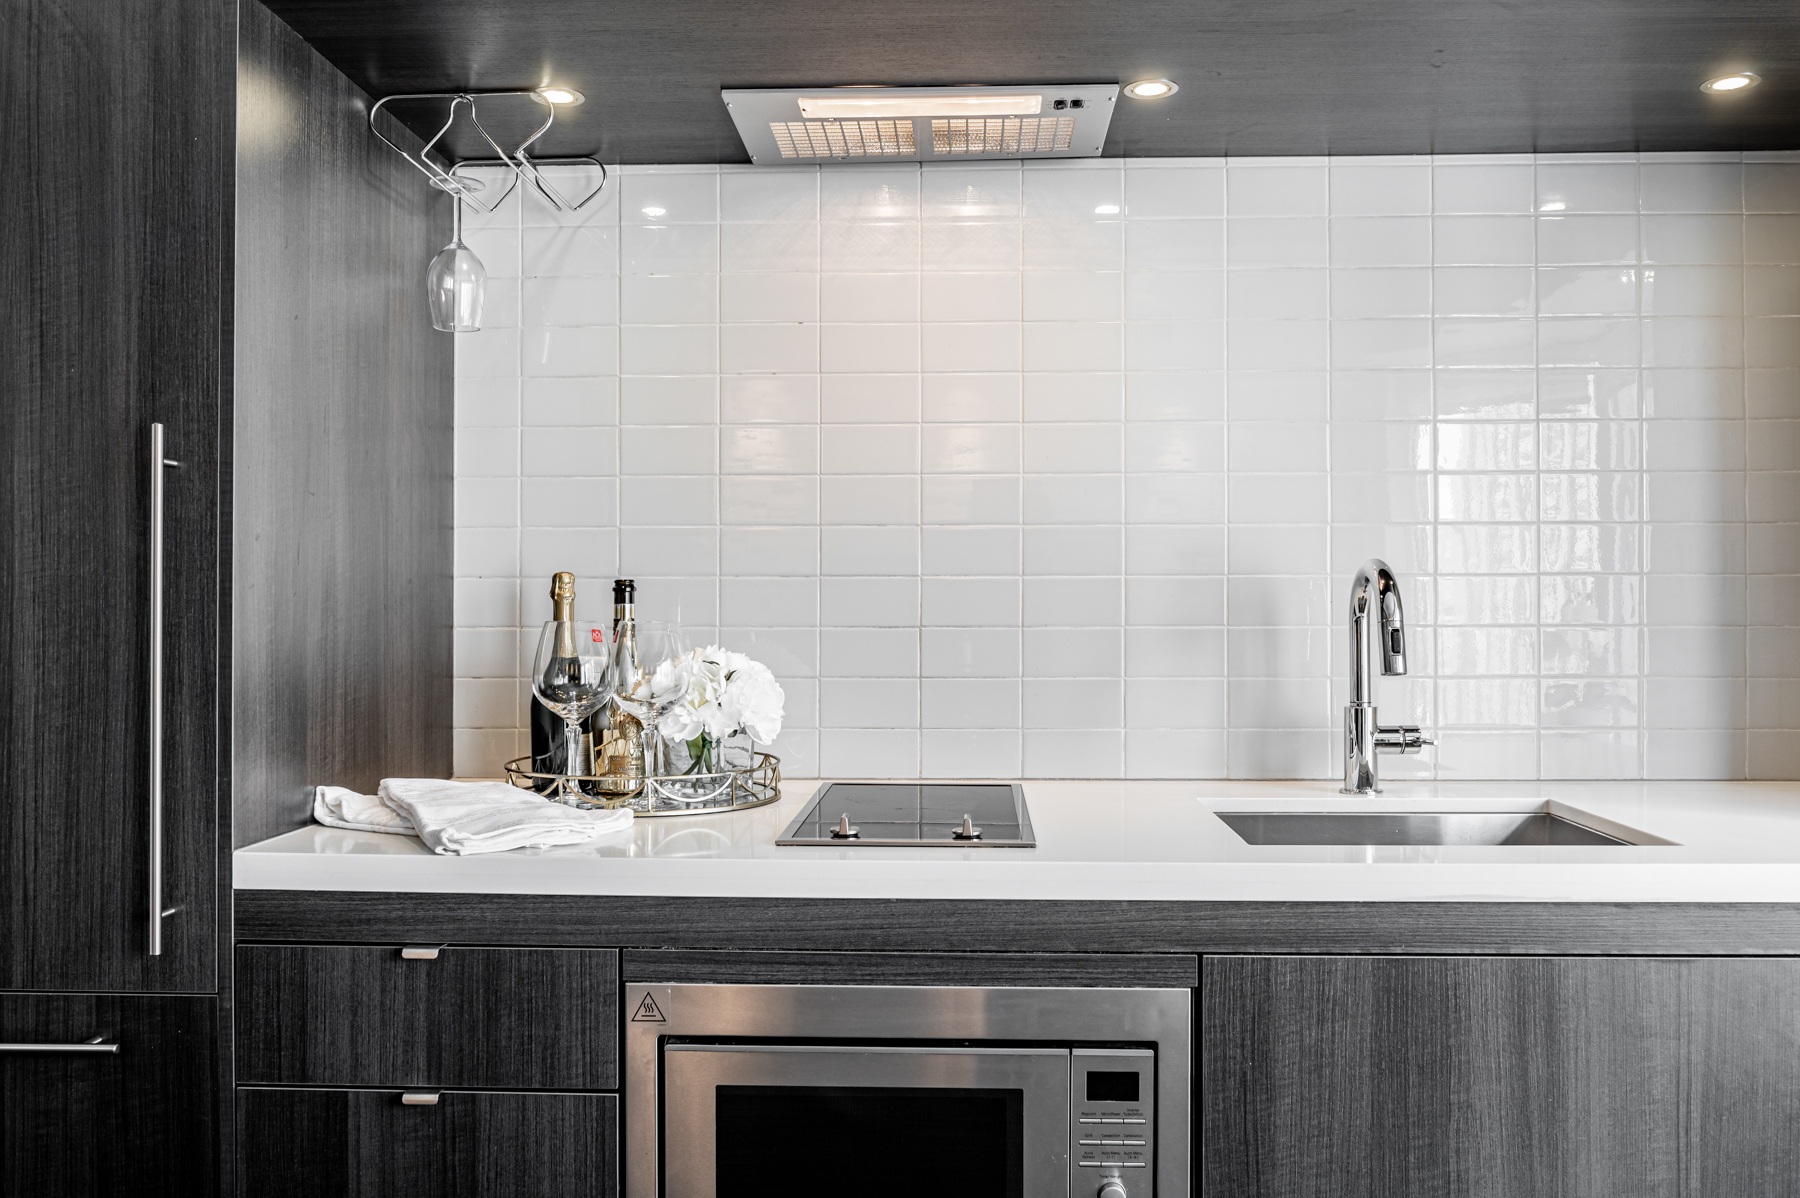 Condo kitchen with dark cabinets, white counters and tiled back-splash.